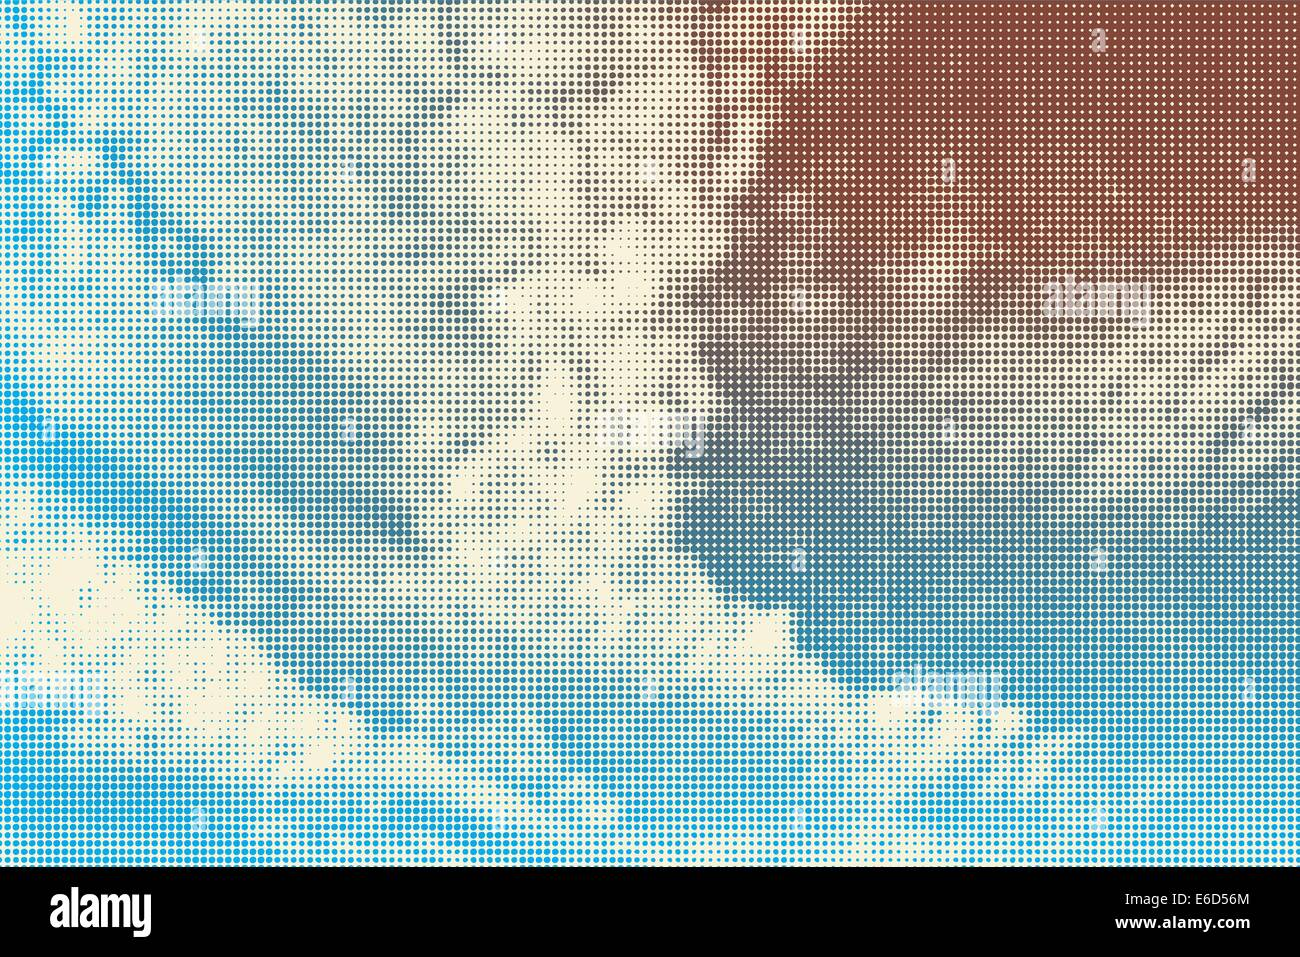 Halftone editable vector illustration of sky and clouds - Stock Image